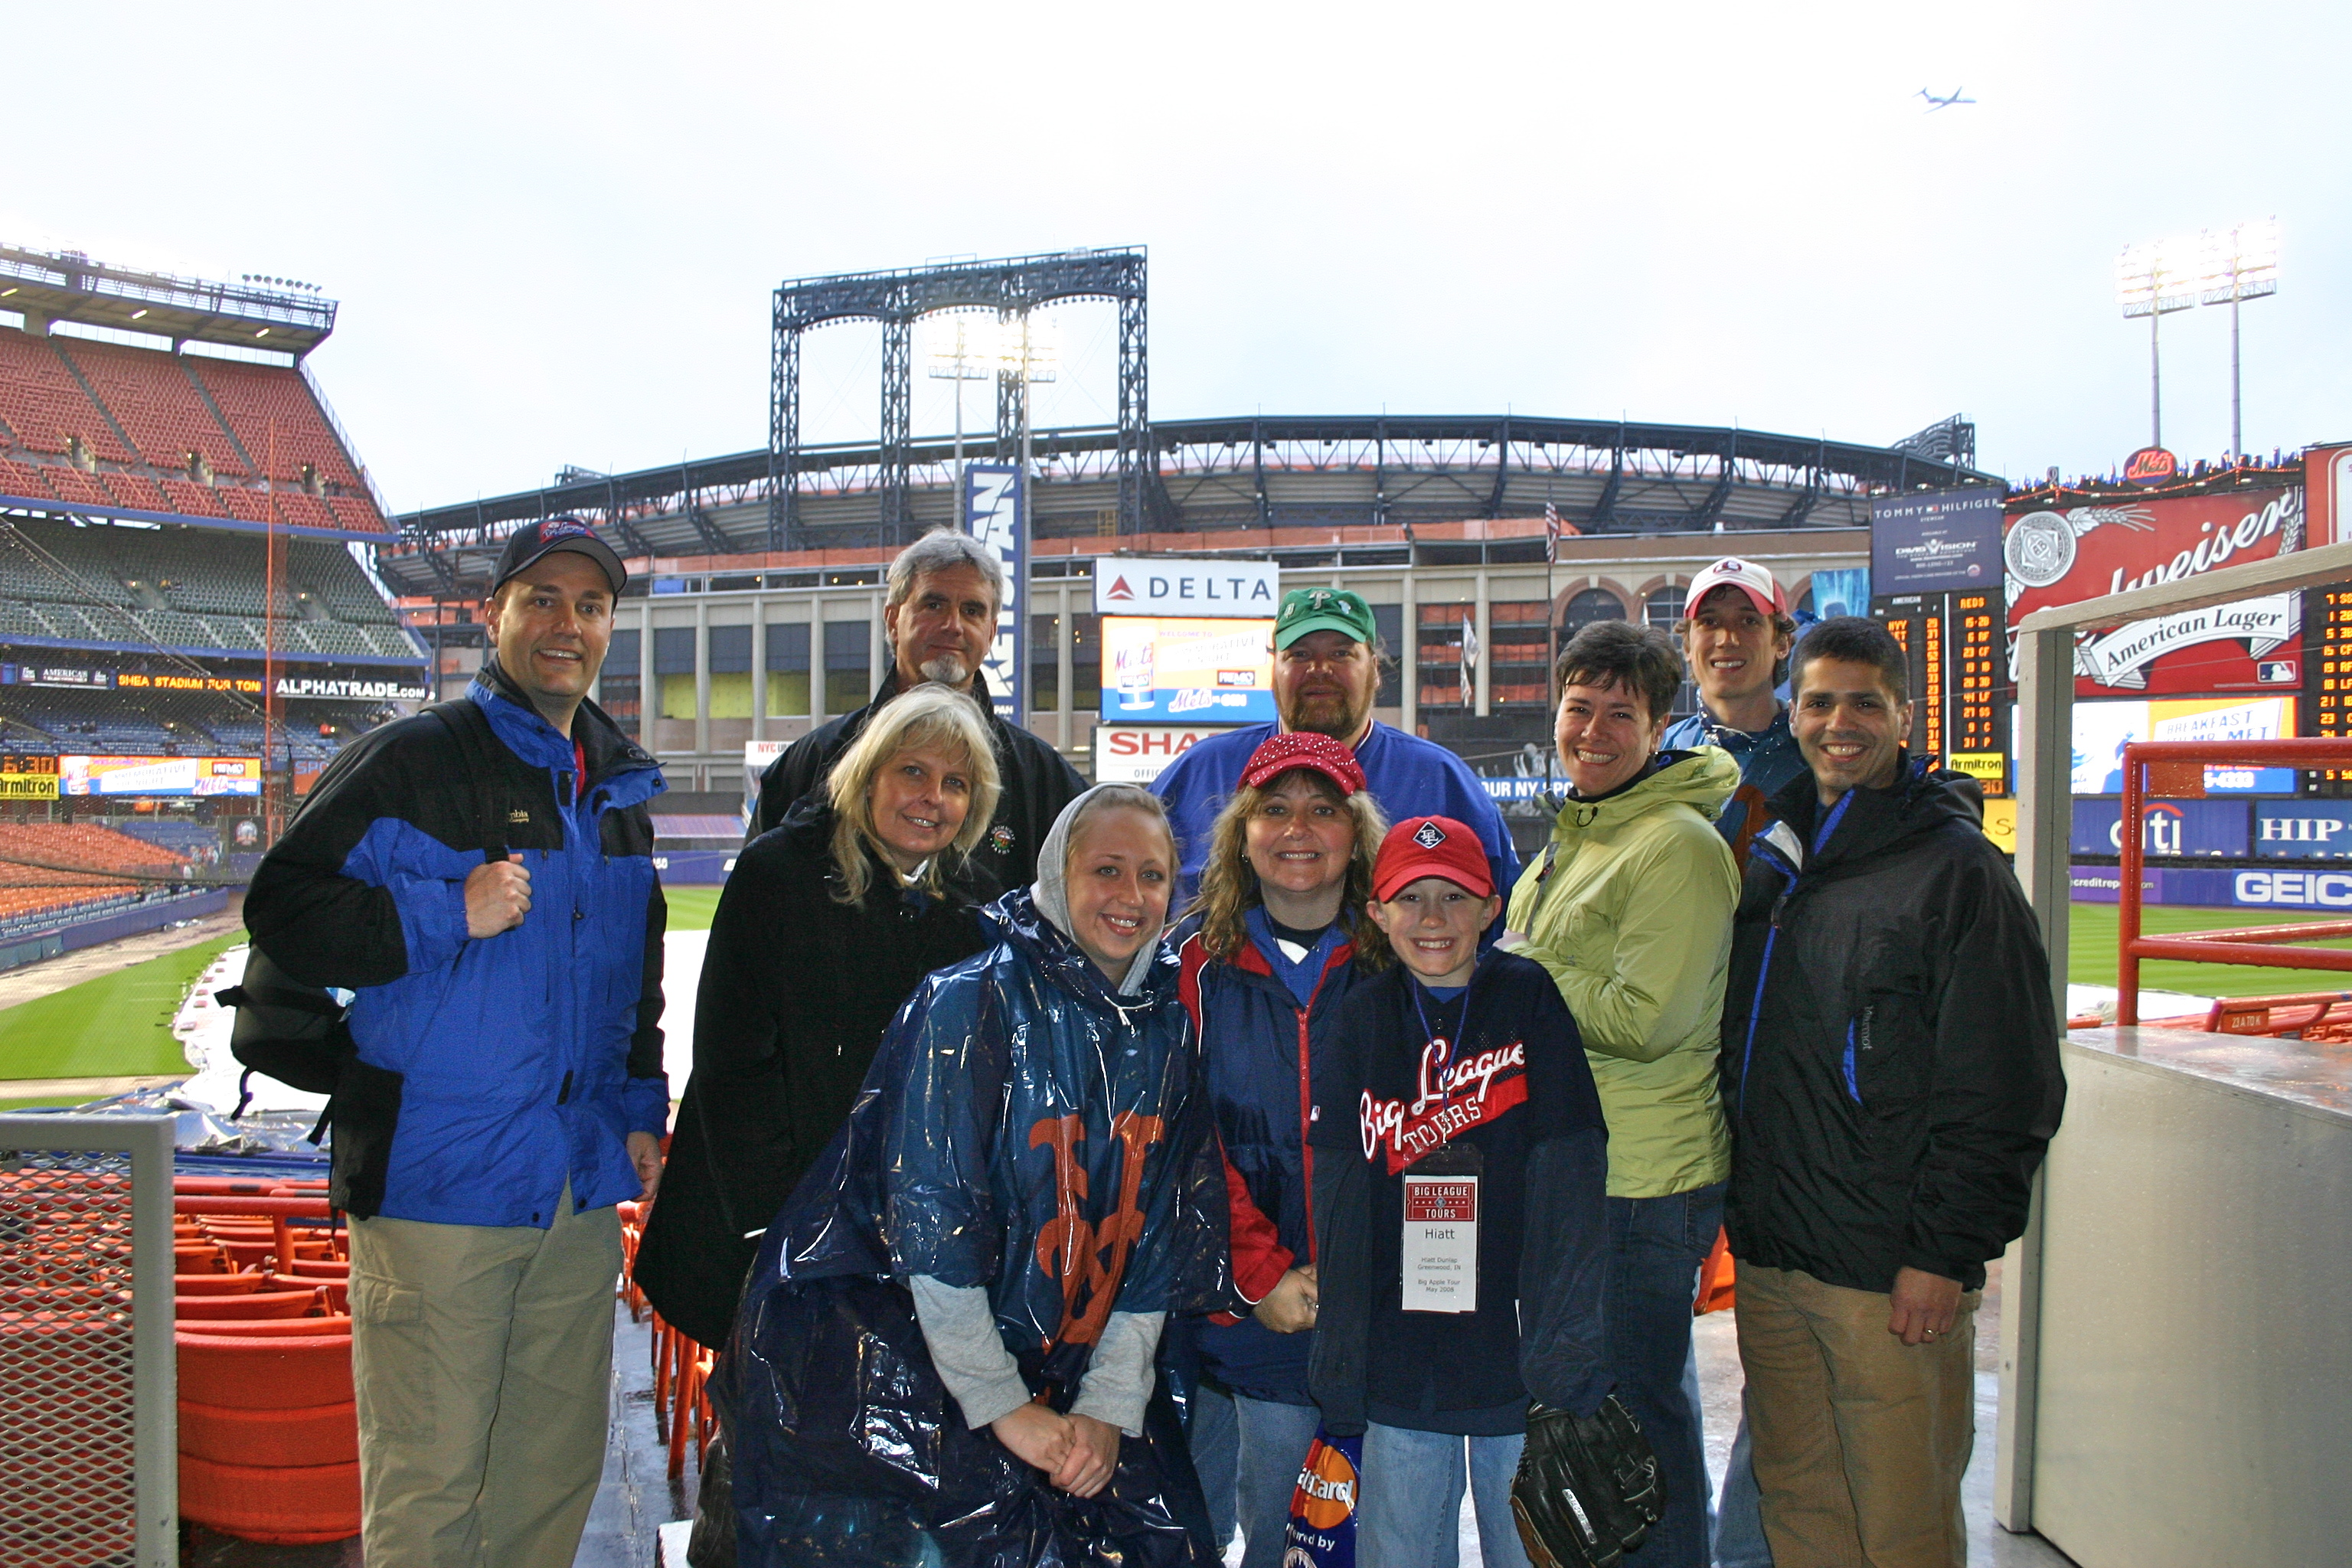 Our tour group huddled up at Shea Stadium w Citi Field in the background